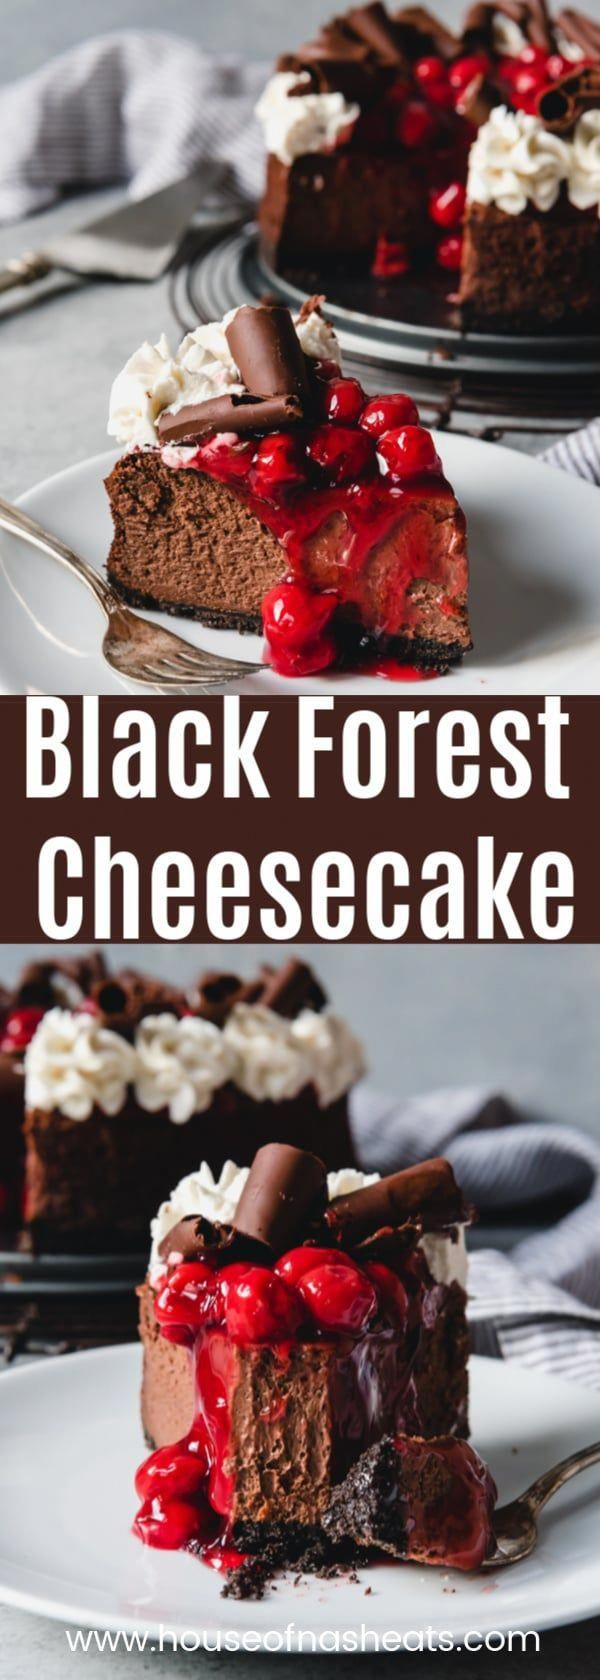 Be still my cherry chocolate loving heart!  This Black Forest Cheesecake is a decadently creamy, dark chocolate cheesecake topped with cherry pie filling, sweetened whipped cream, and chocolate curls.  #ad #cheesecake #blackforest #chocolate #cherries #easy #recipe #christmas #valentinesday #best #dark #dessert #holiday #cherrypiefillings #chocolatecheesecake